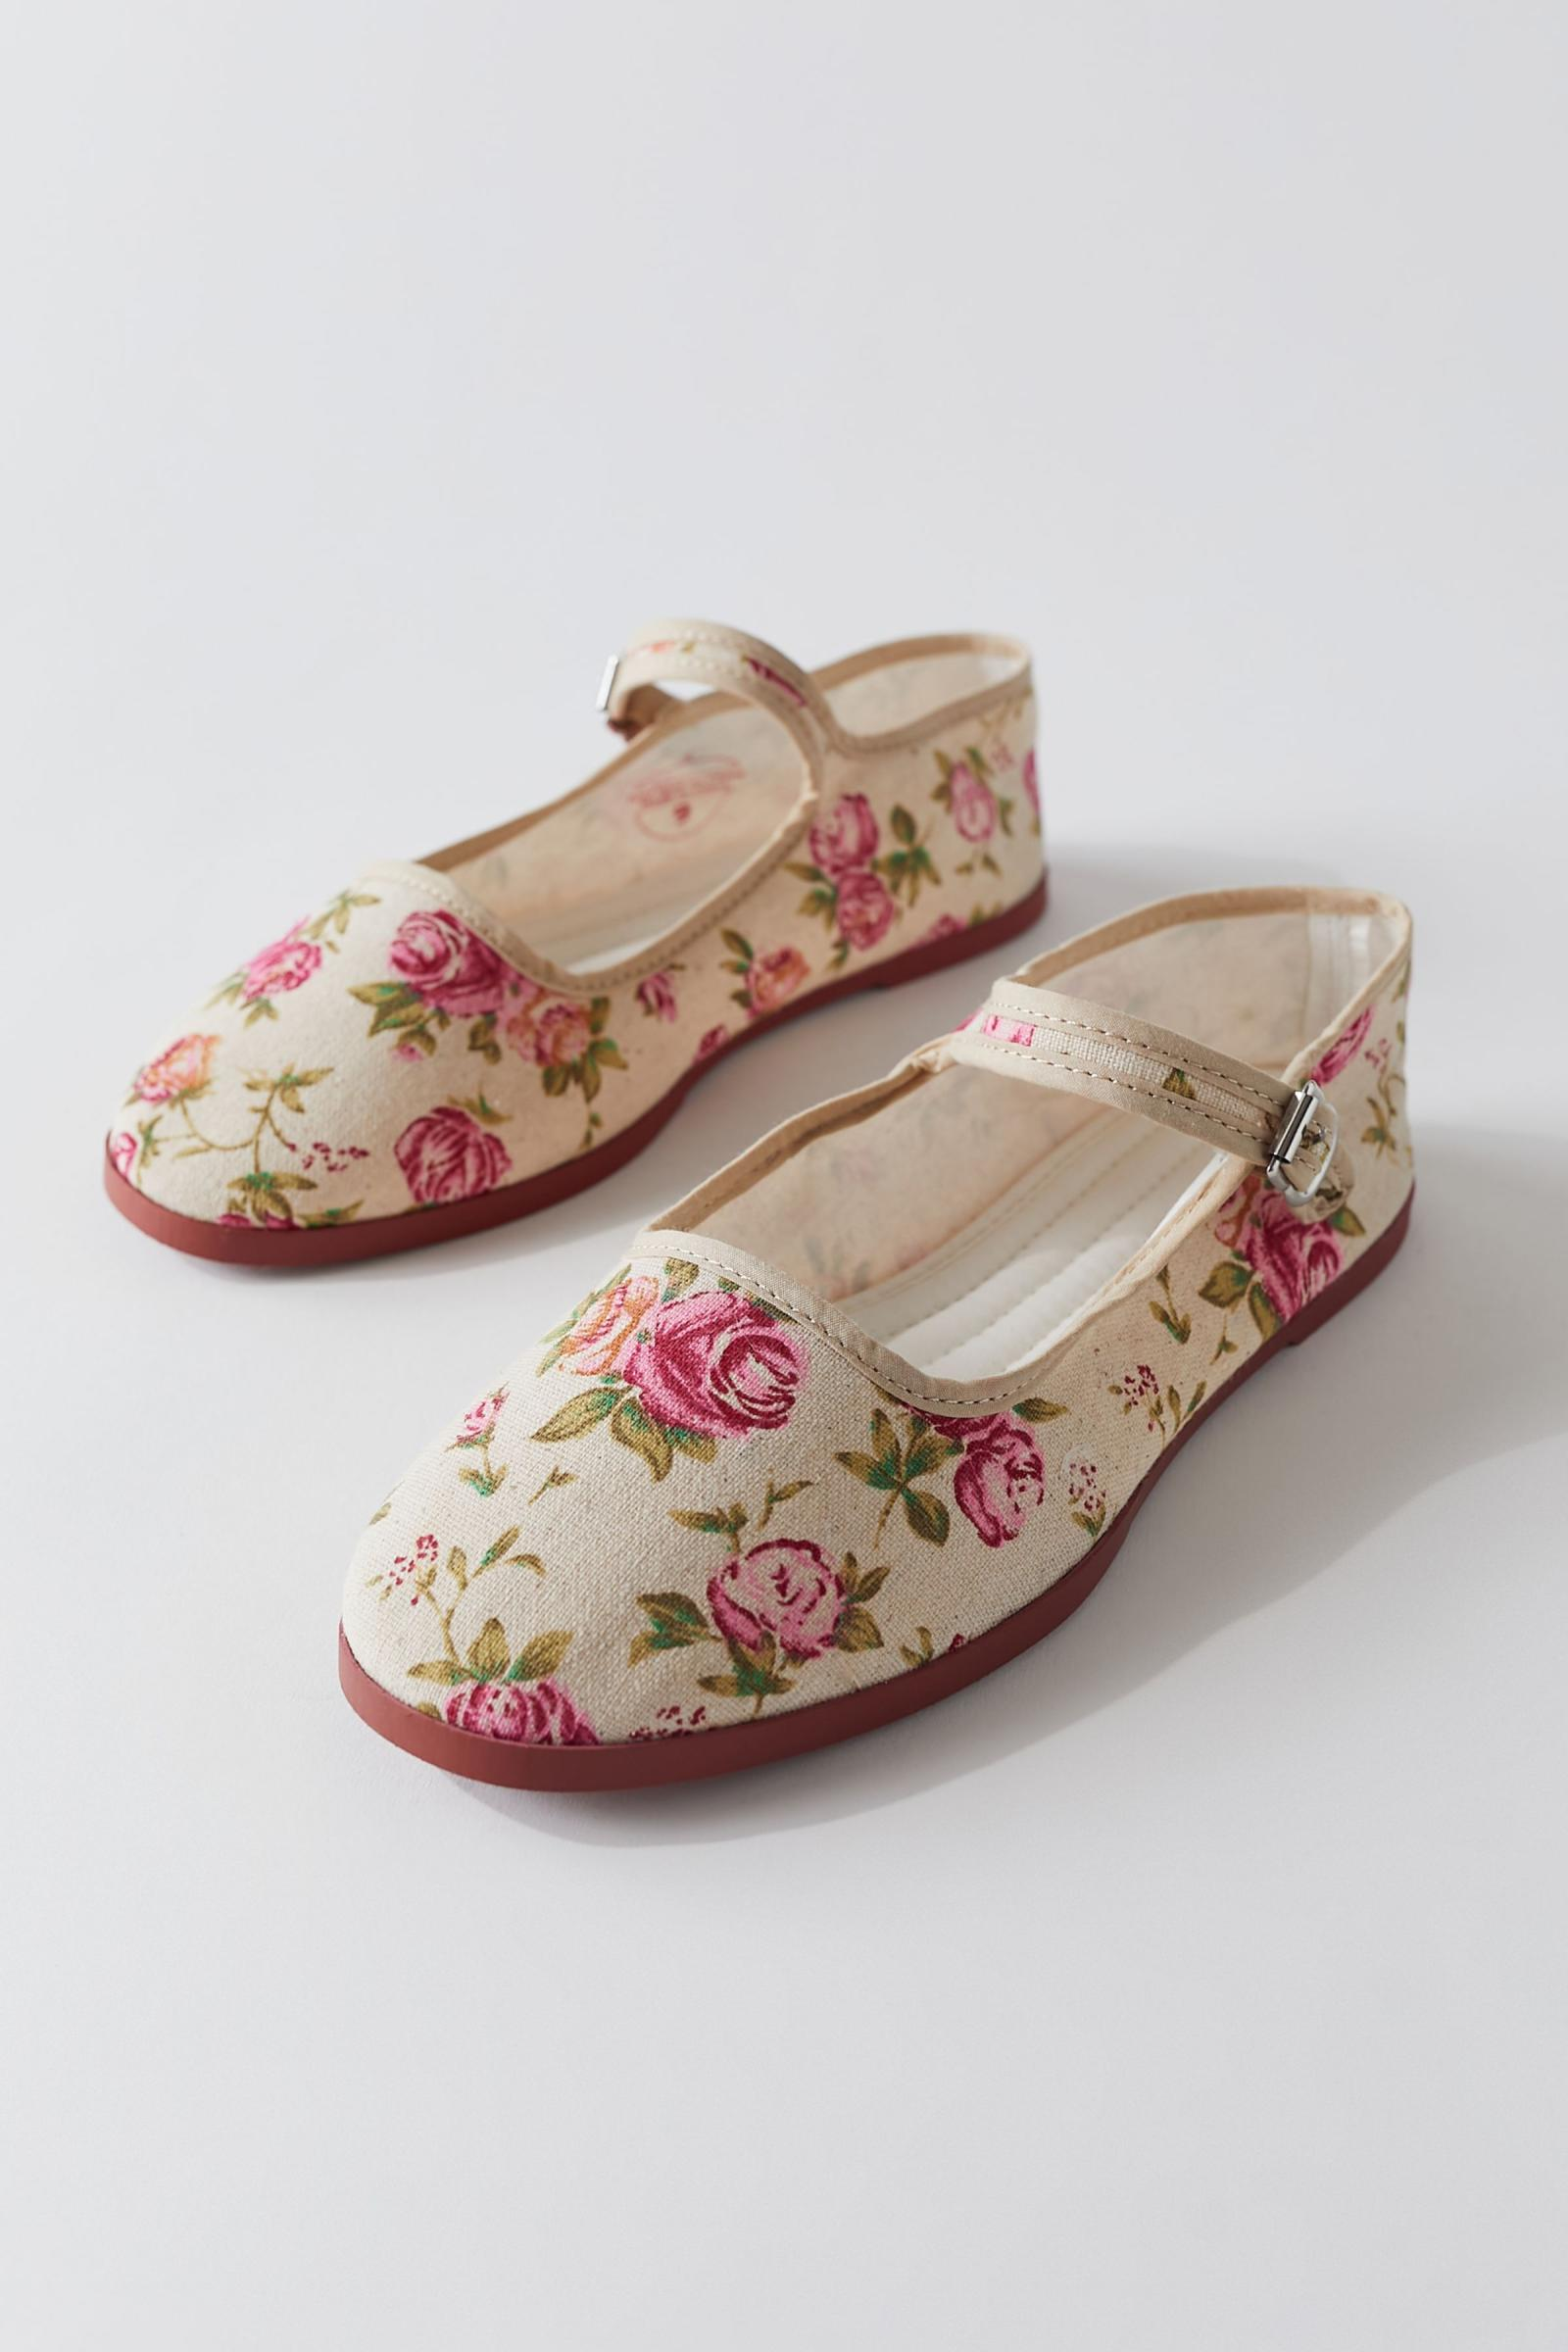 Uo Floral Mary Jane Urban Outfitters New Zealand